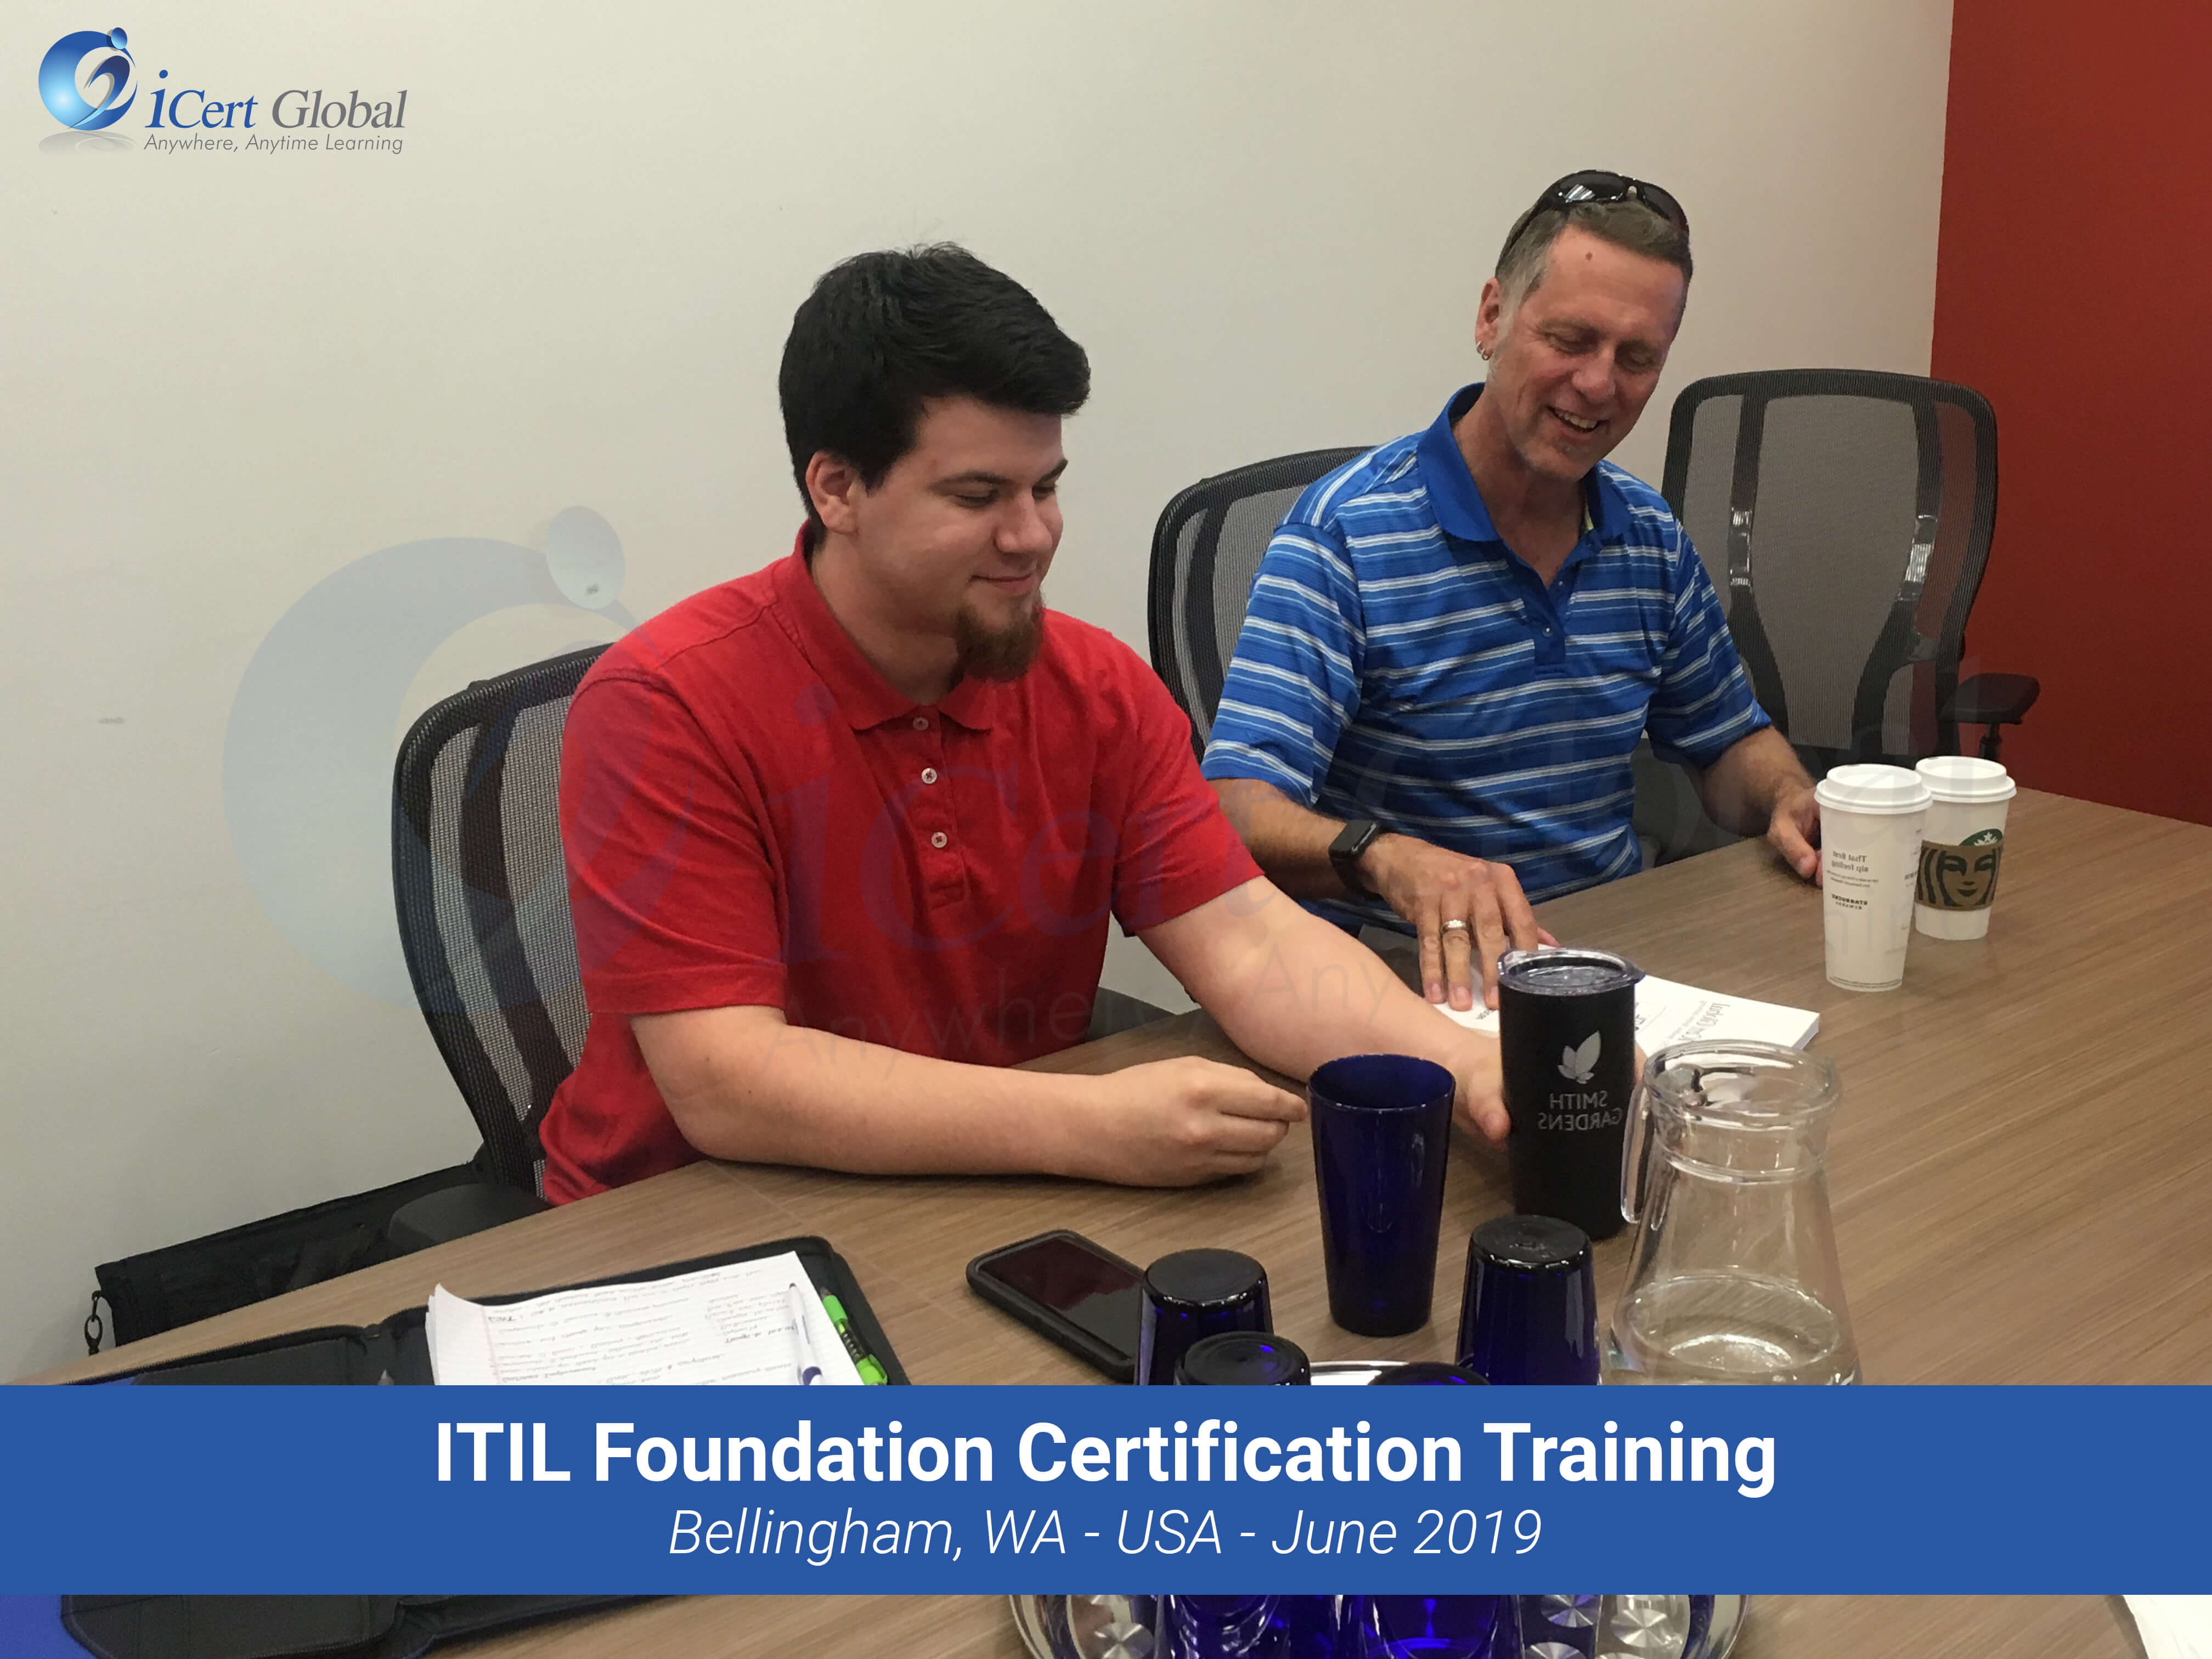 ITIL Foundation Certification Training Classroom Course in Bellingham, WA - June 2019